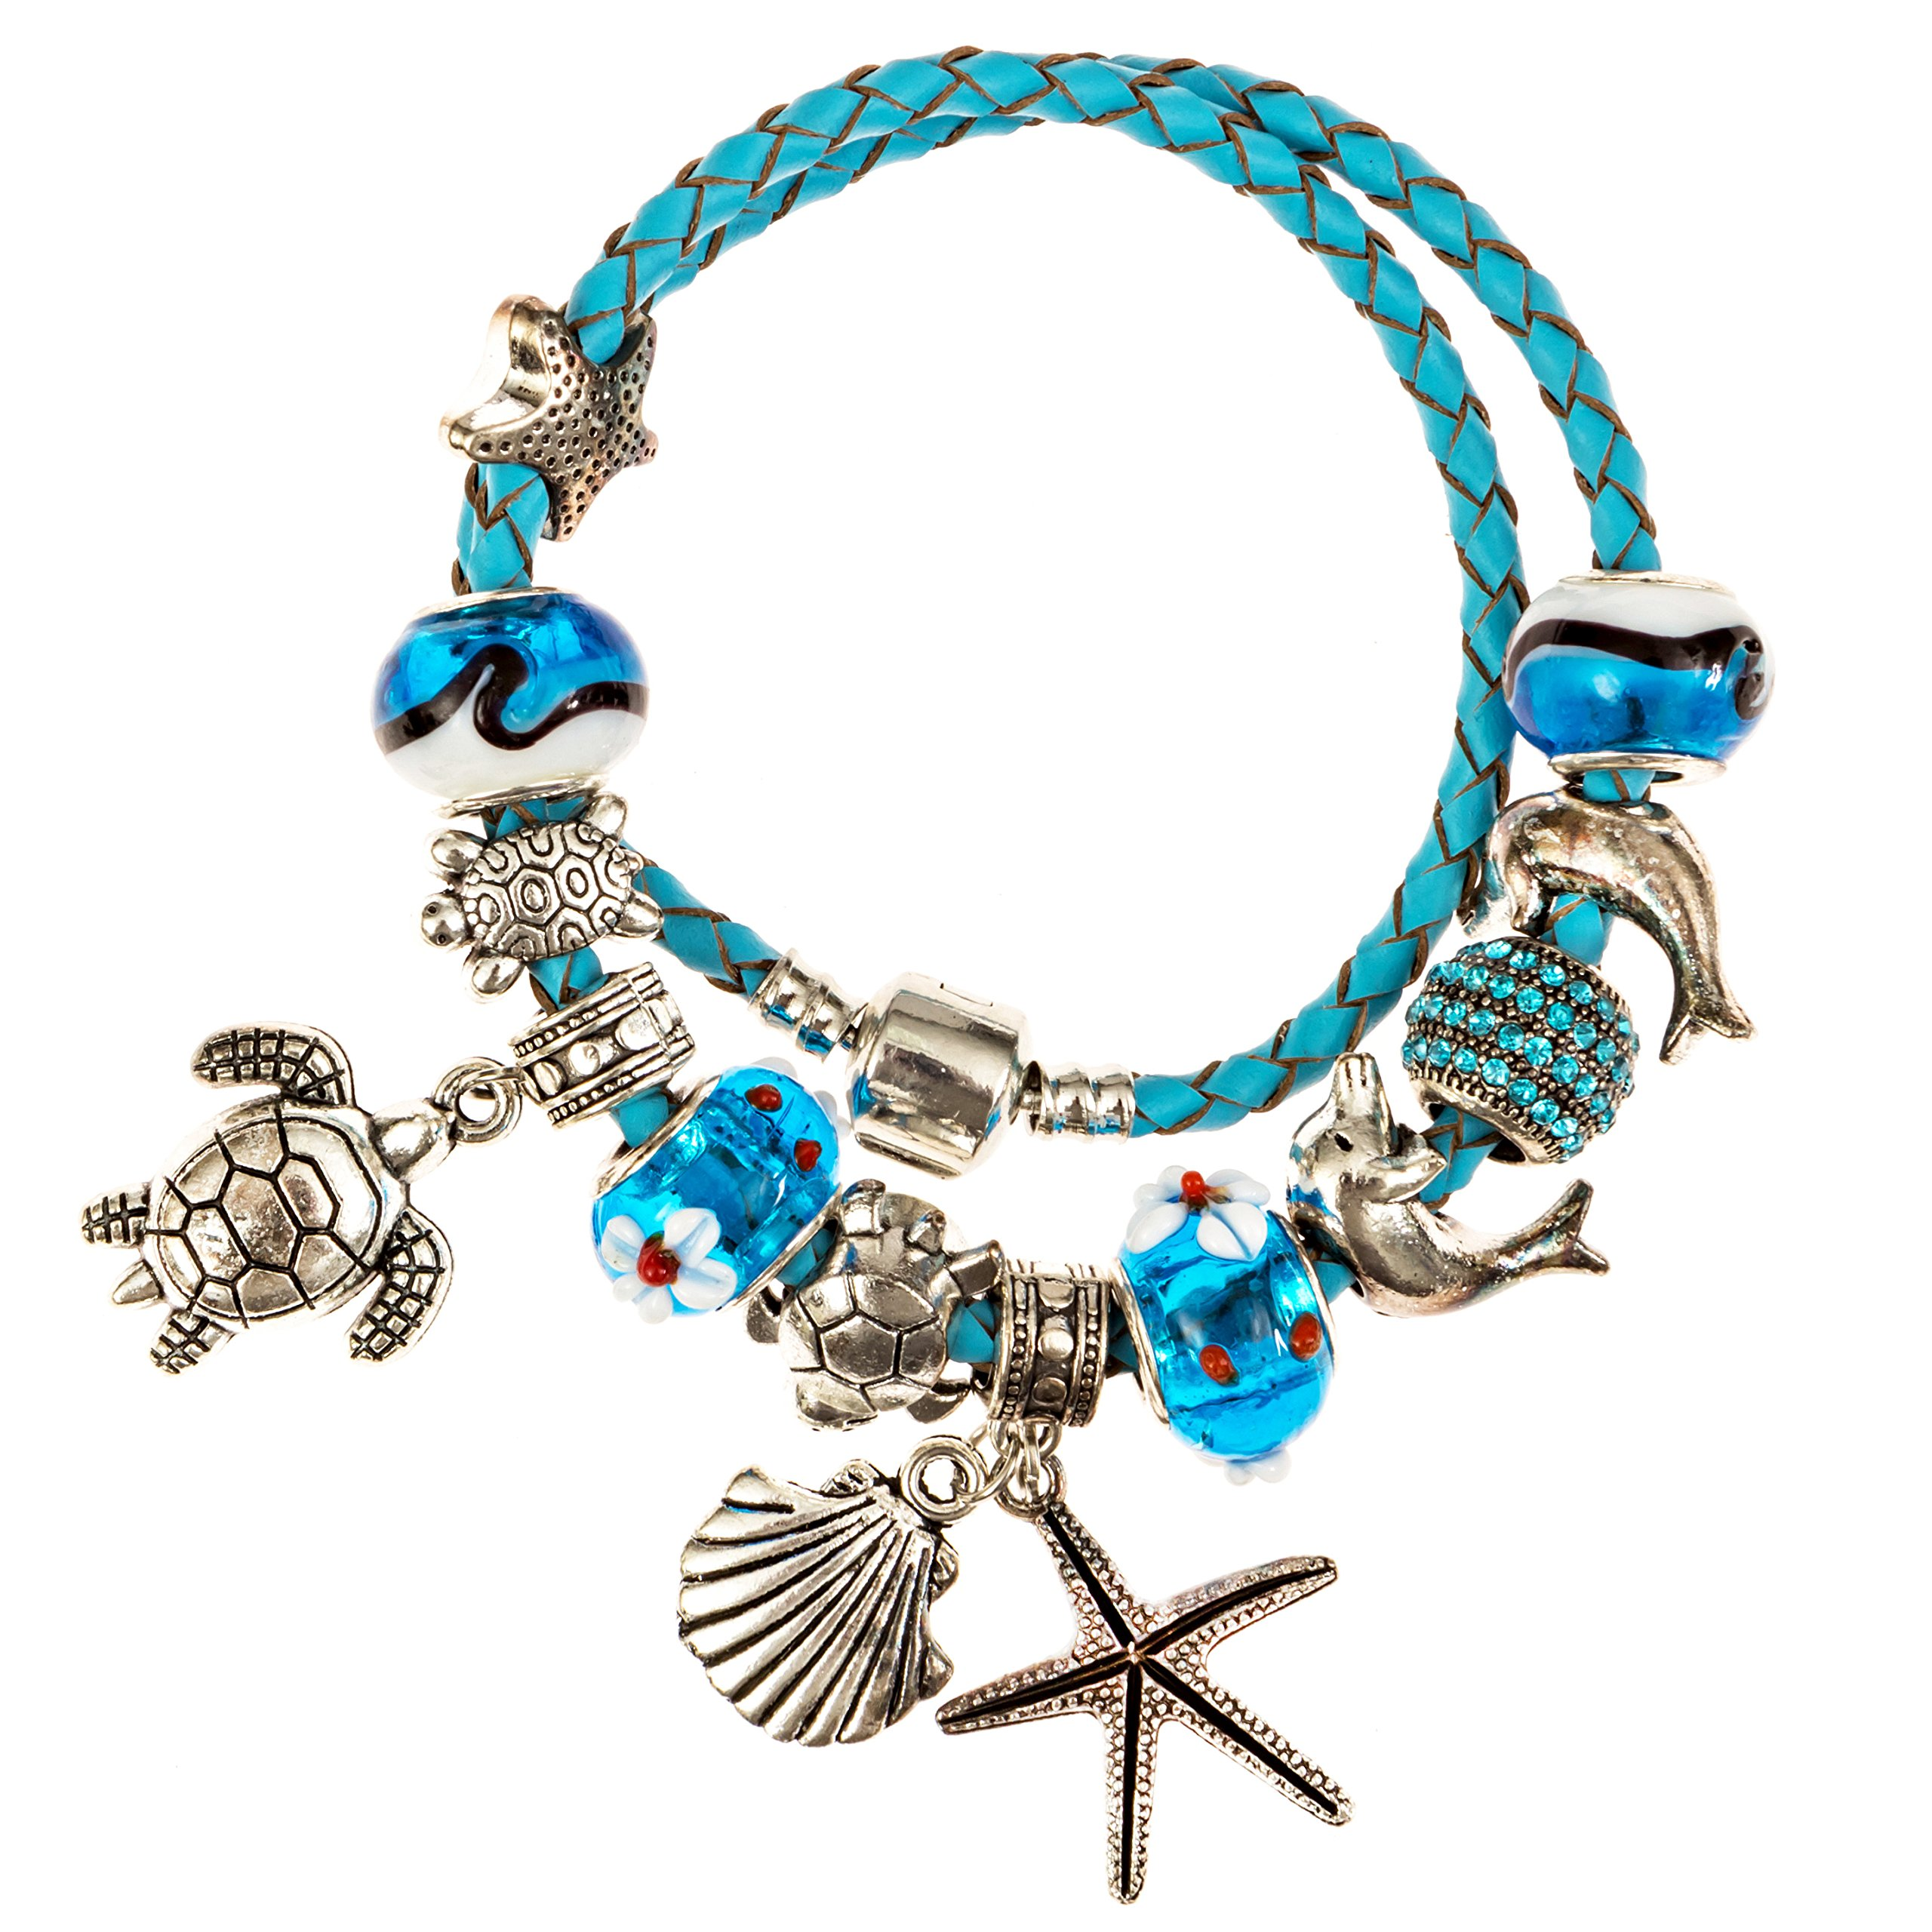 European Ocean Beach Charm Beaded Leather Wrap 7.5 Inch for Women and Teen Girls Turtle Starfish Seashell Dolphin Dangle Charms Aquamarine Murano Glass Beads Prime Quality Gift